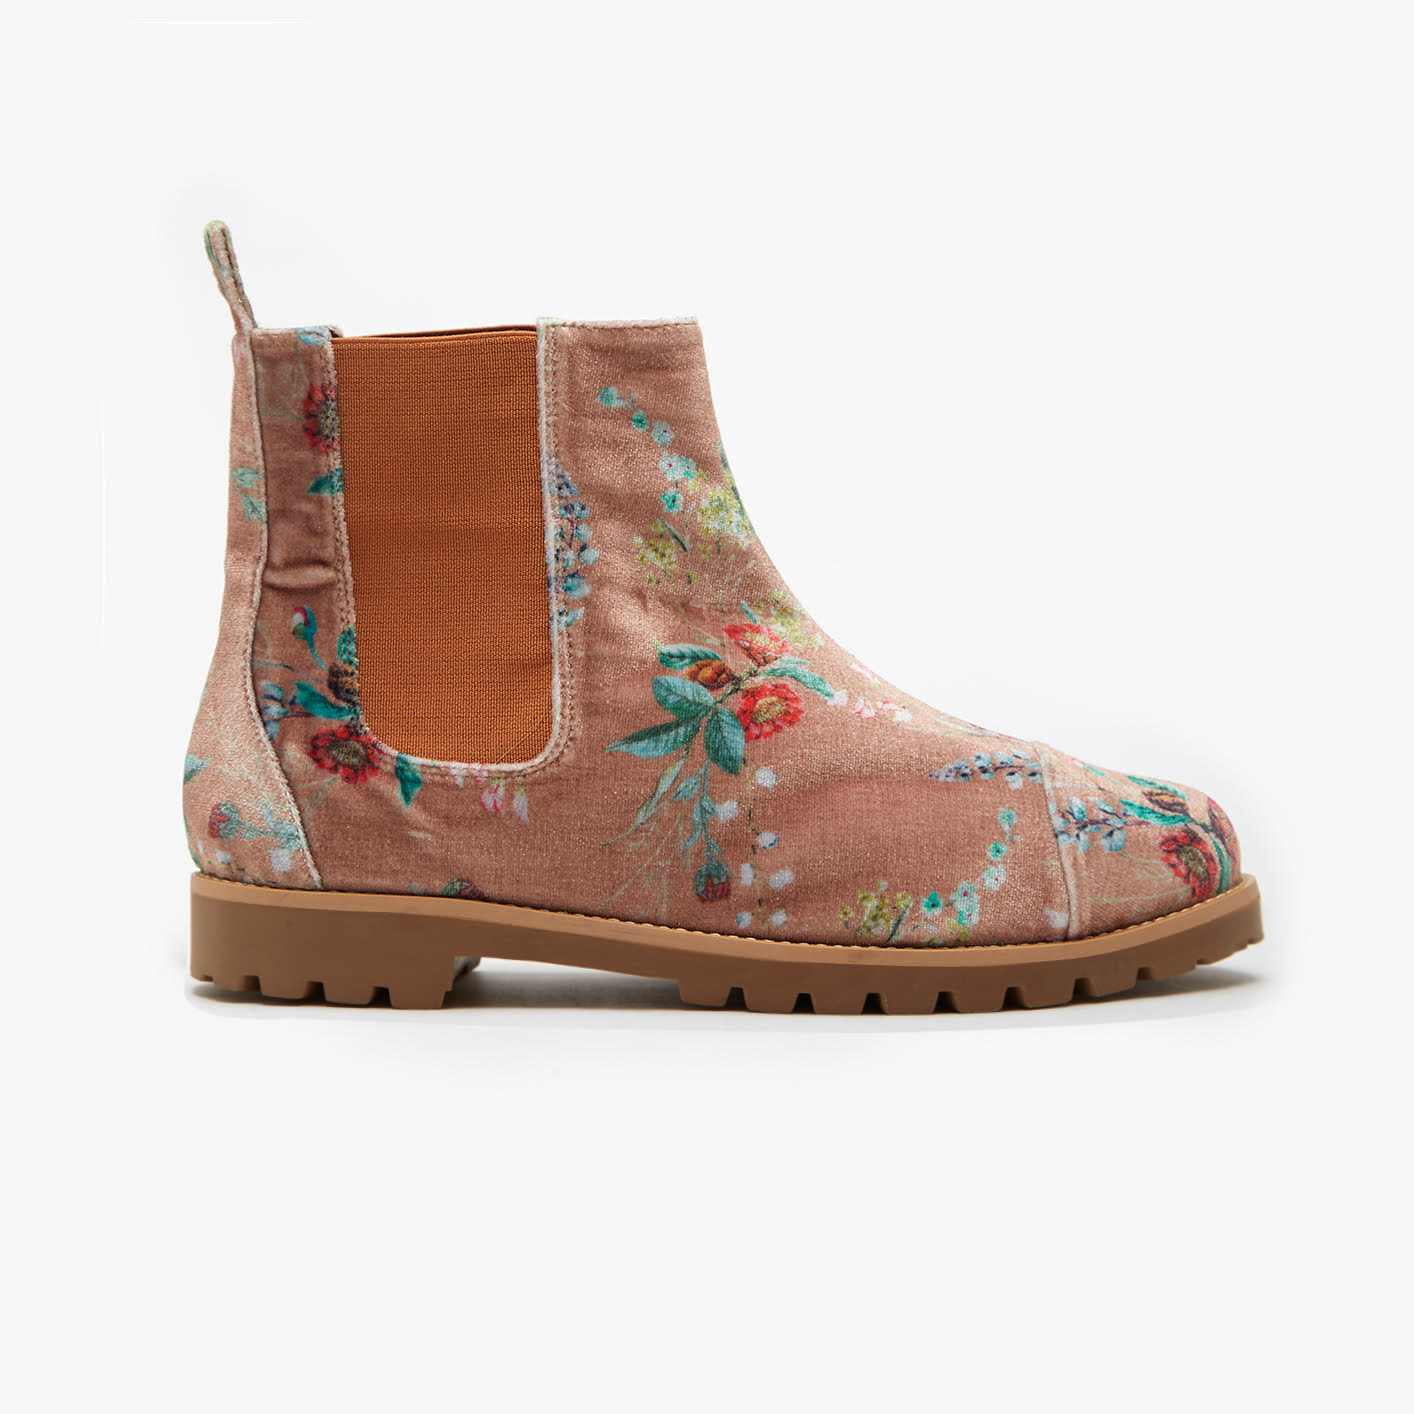 Veludo Camelia Chelsea Boot - Insecta Shoes